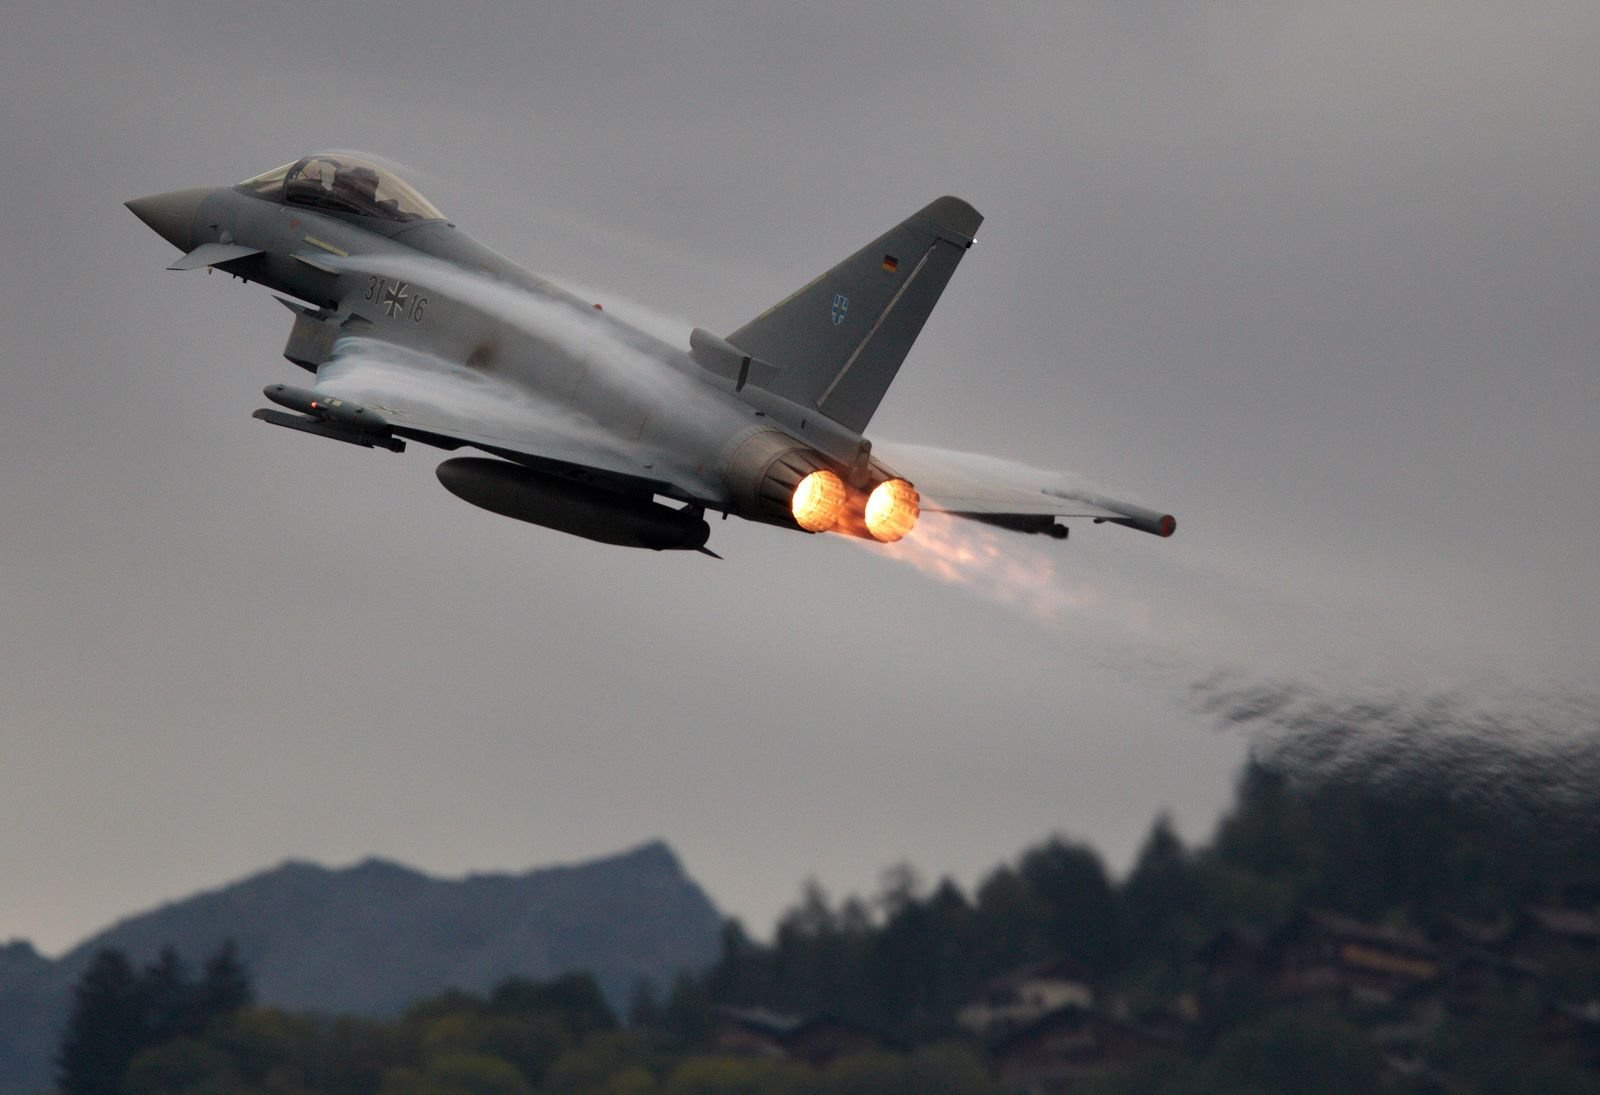 Bae systems / EADS / Eurofighter